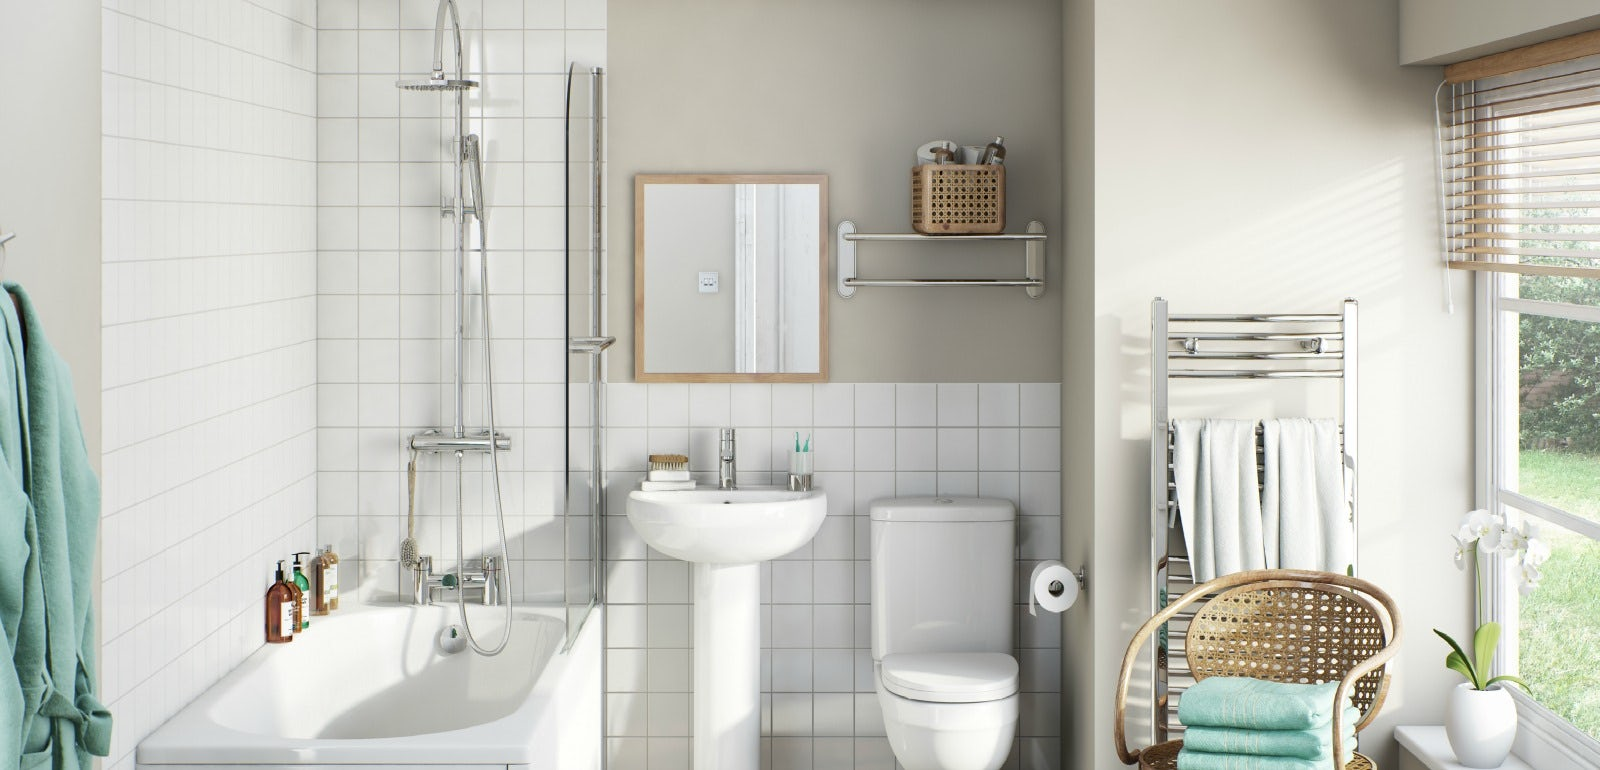 Your bathroom layout & clearance guidelines | VictoriaPlum.com